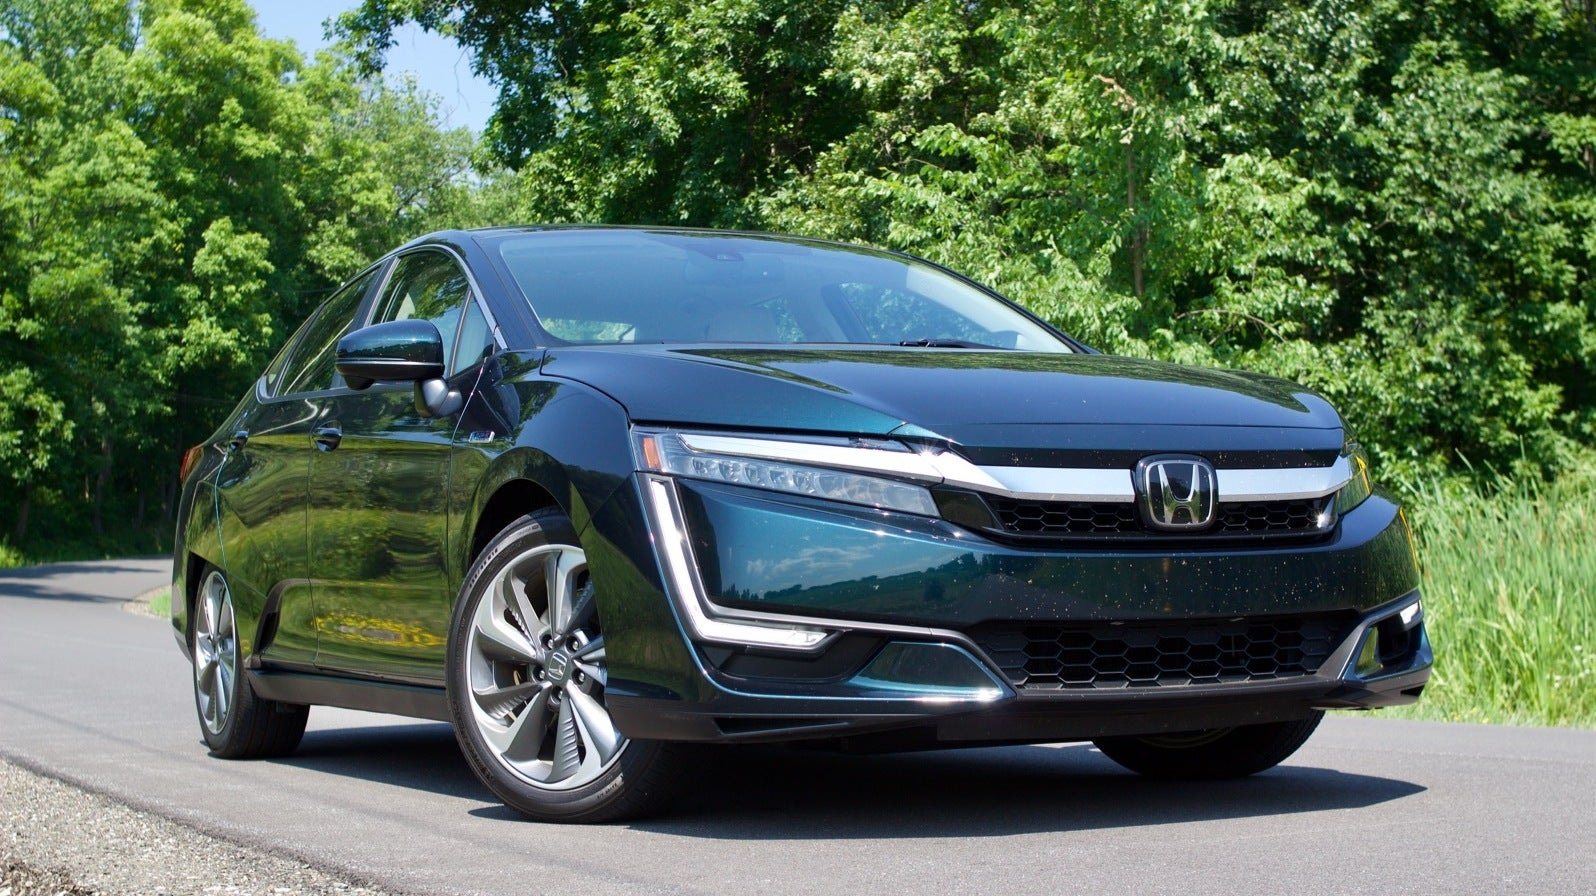 The 2018 Honda Clarity Plug-In Is An Electrified Car That Doesn't Demand Compromises